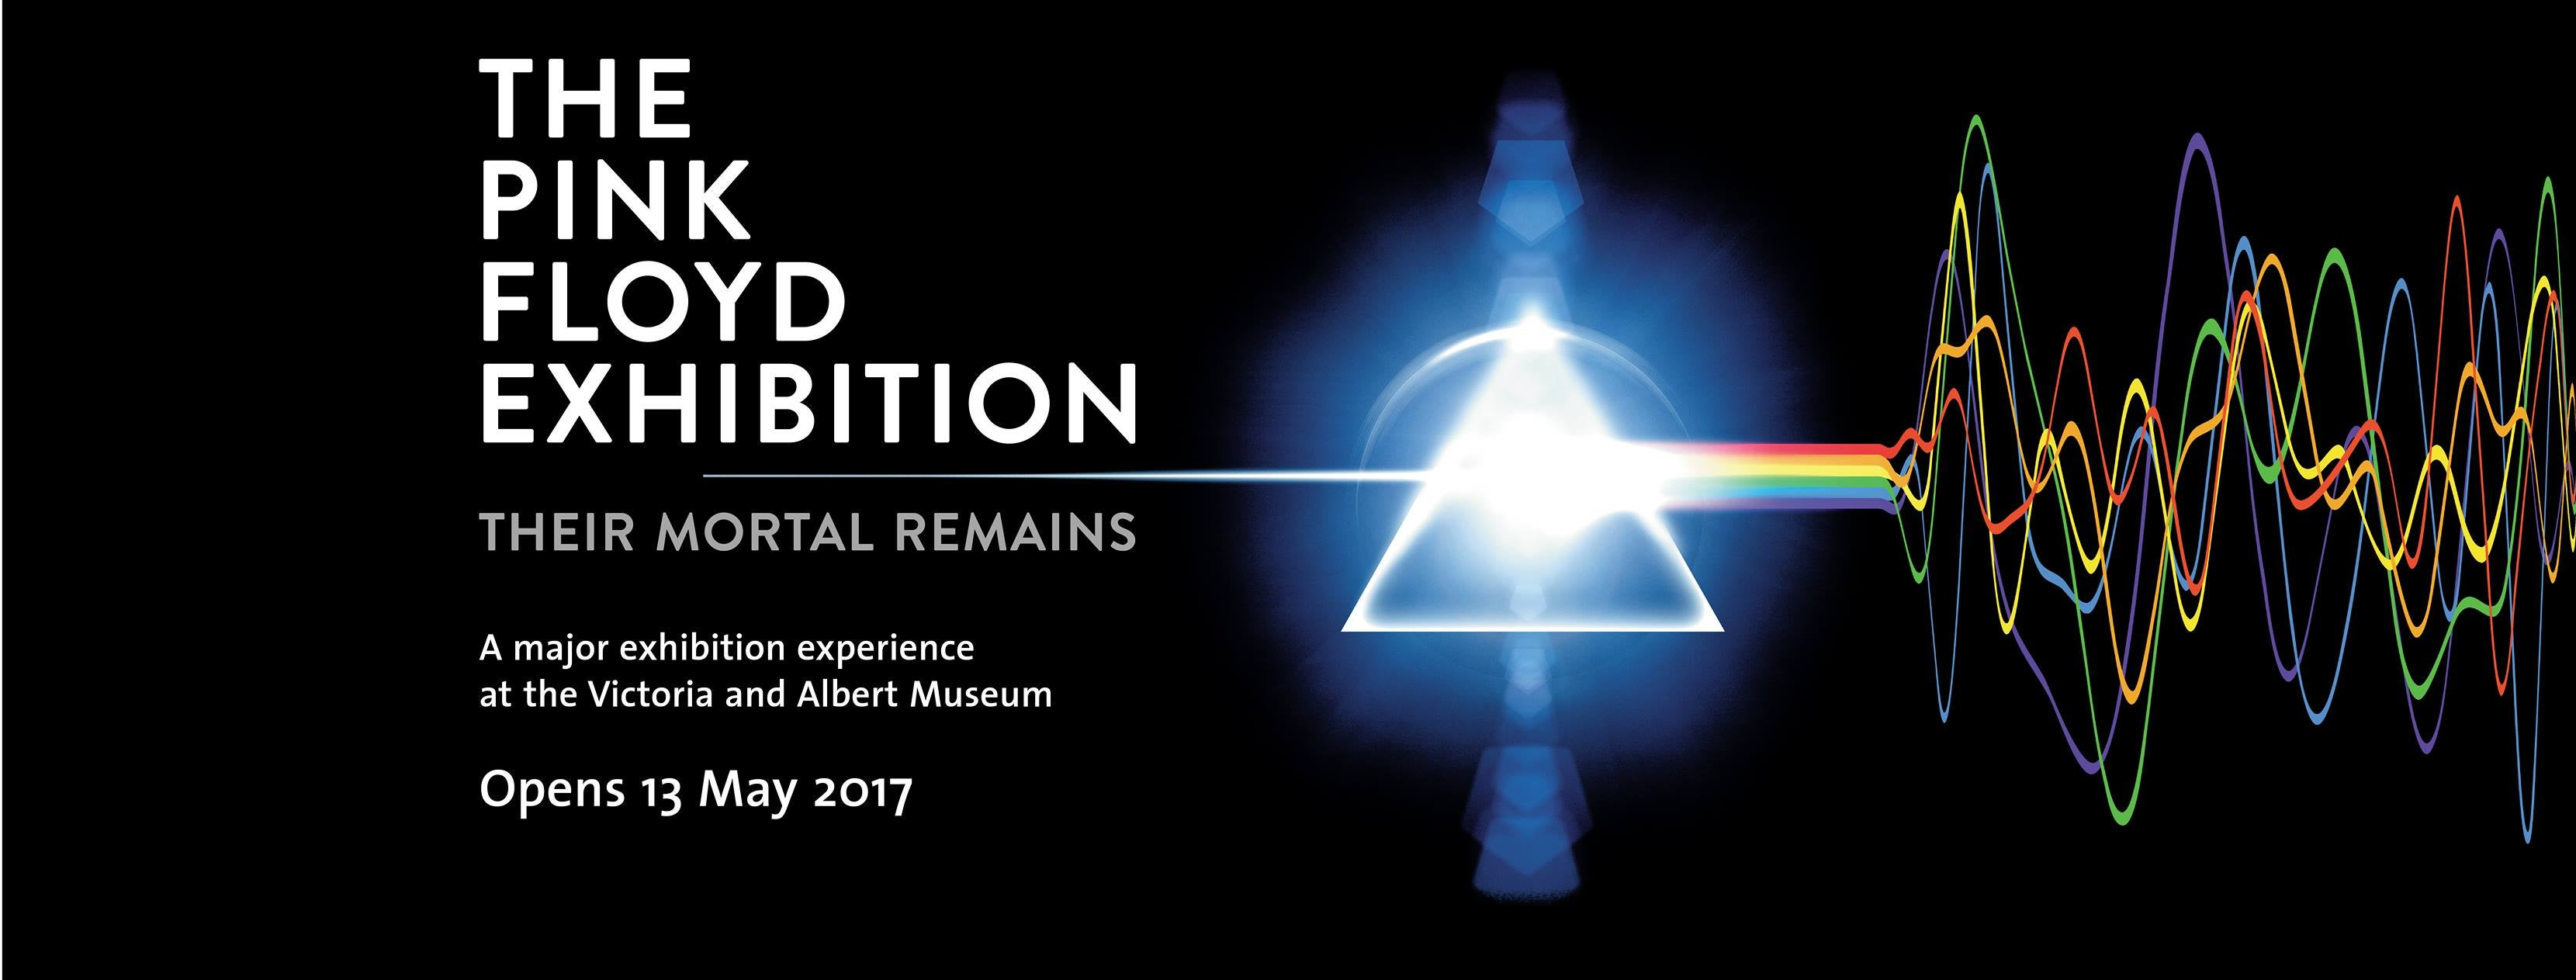 Transmisja z wystawy The Pink Floyd Exhibition: Their Mortal Remains!